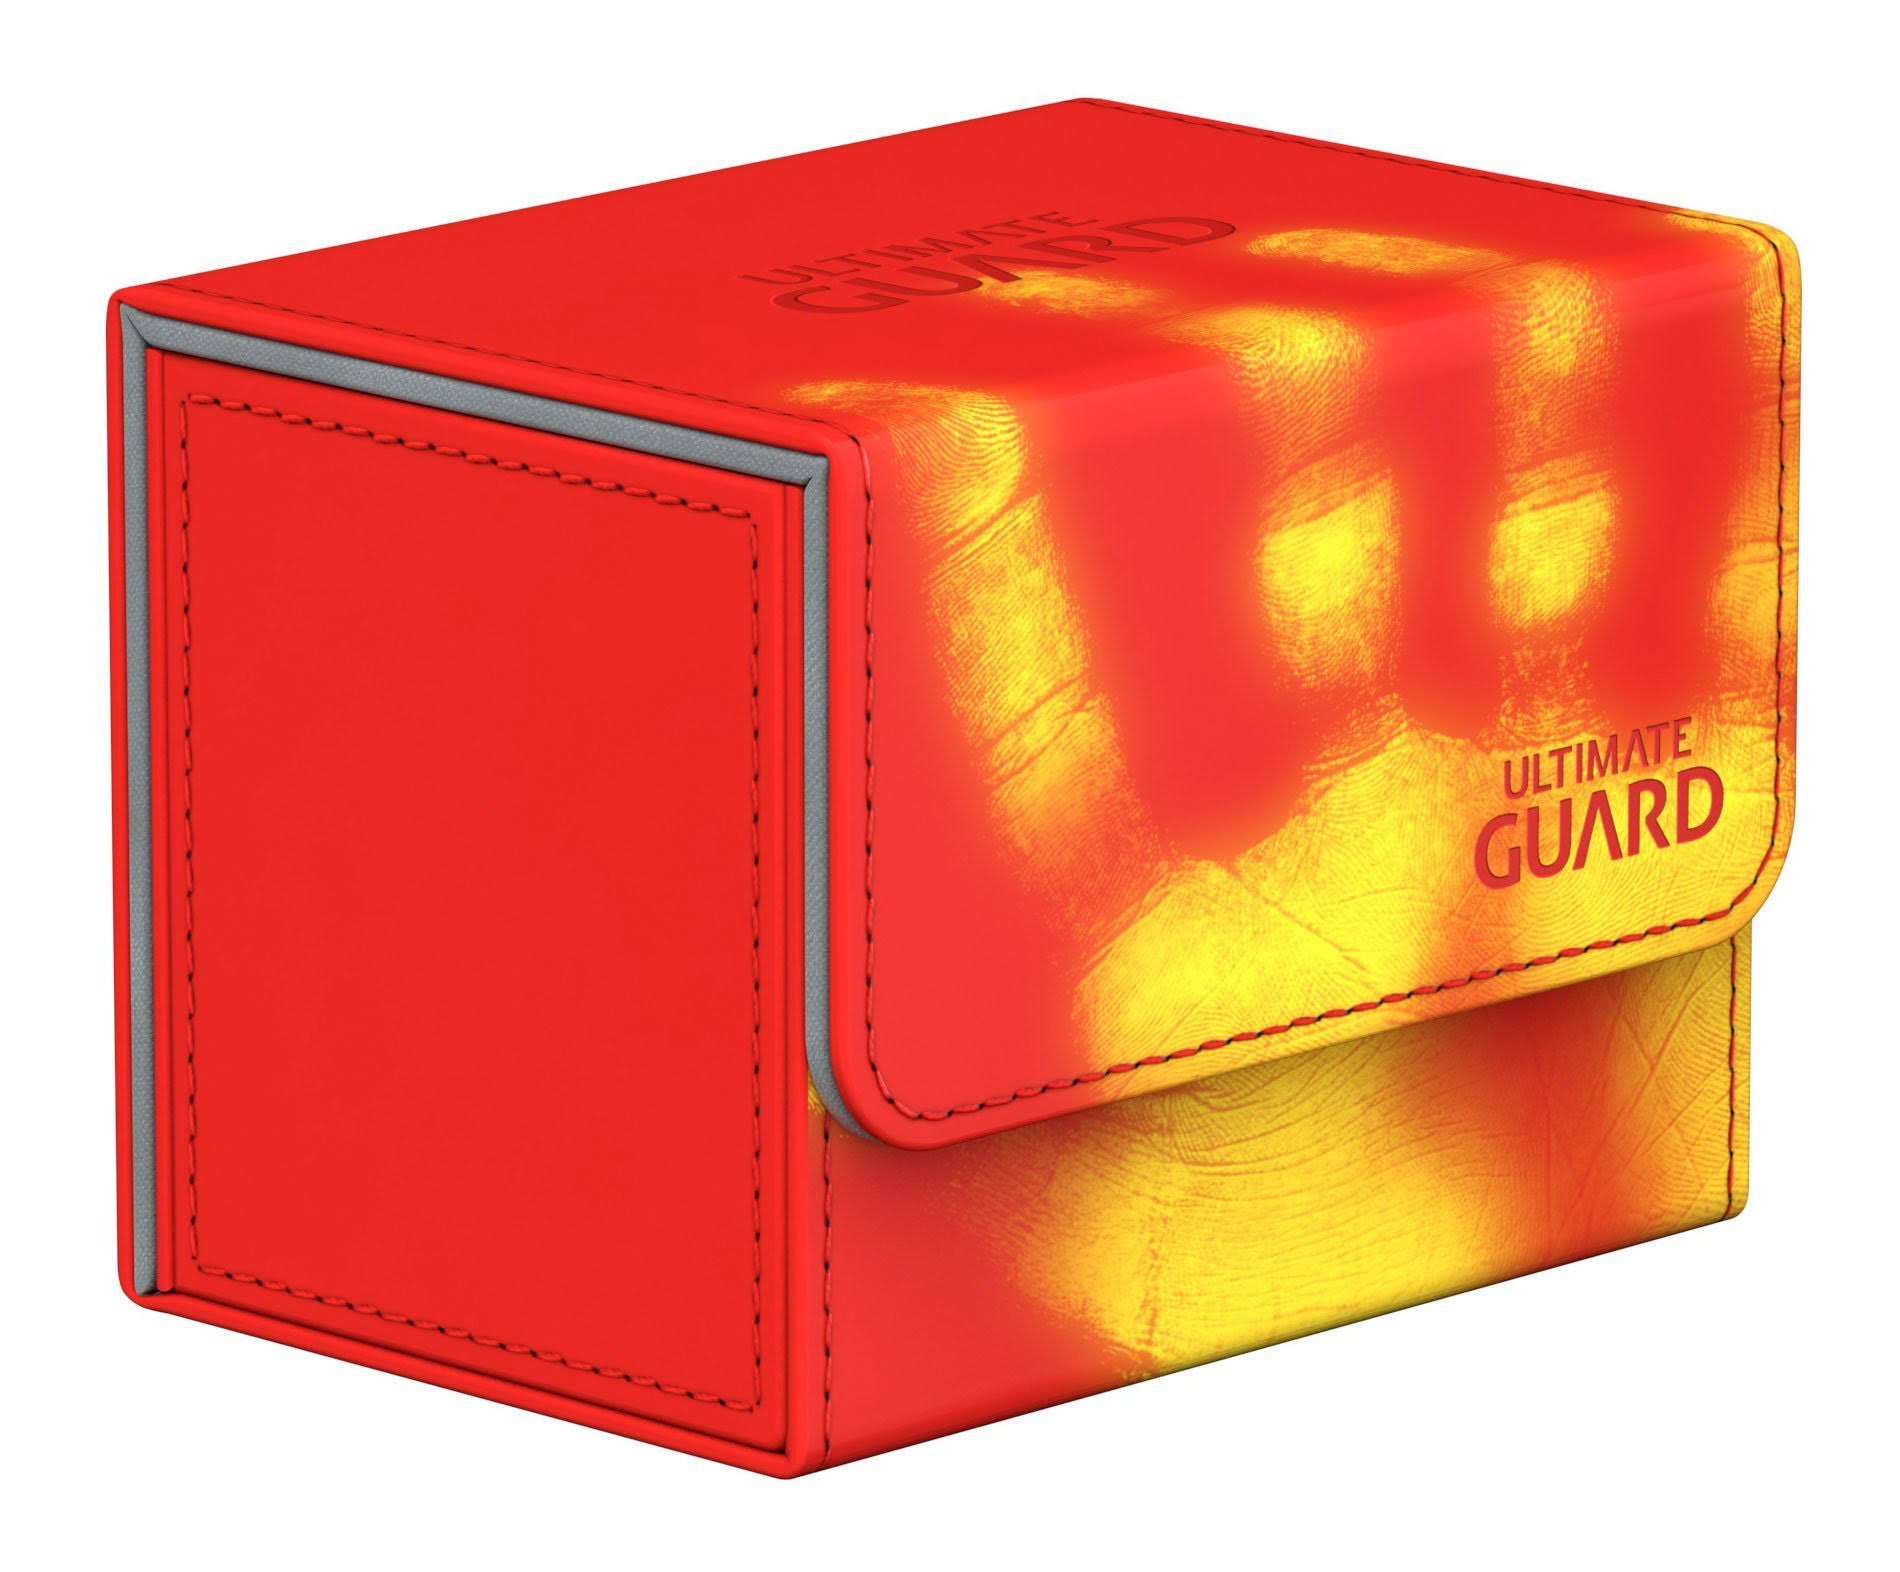 Sidewinder Ultimate Guard Chromiaskin Card Case - 80 Standard Size, Red